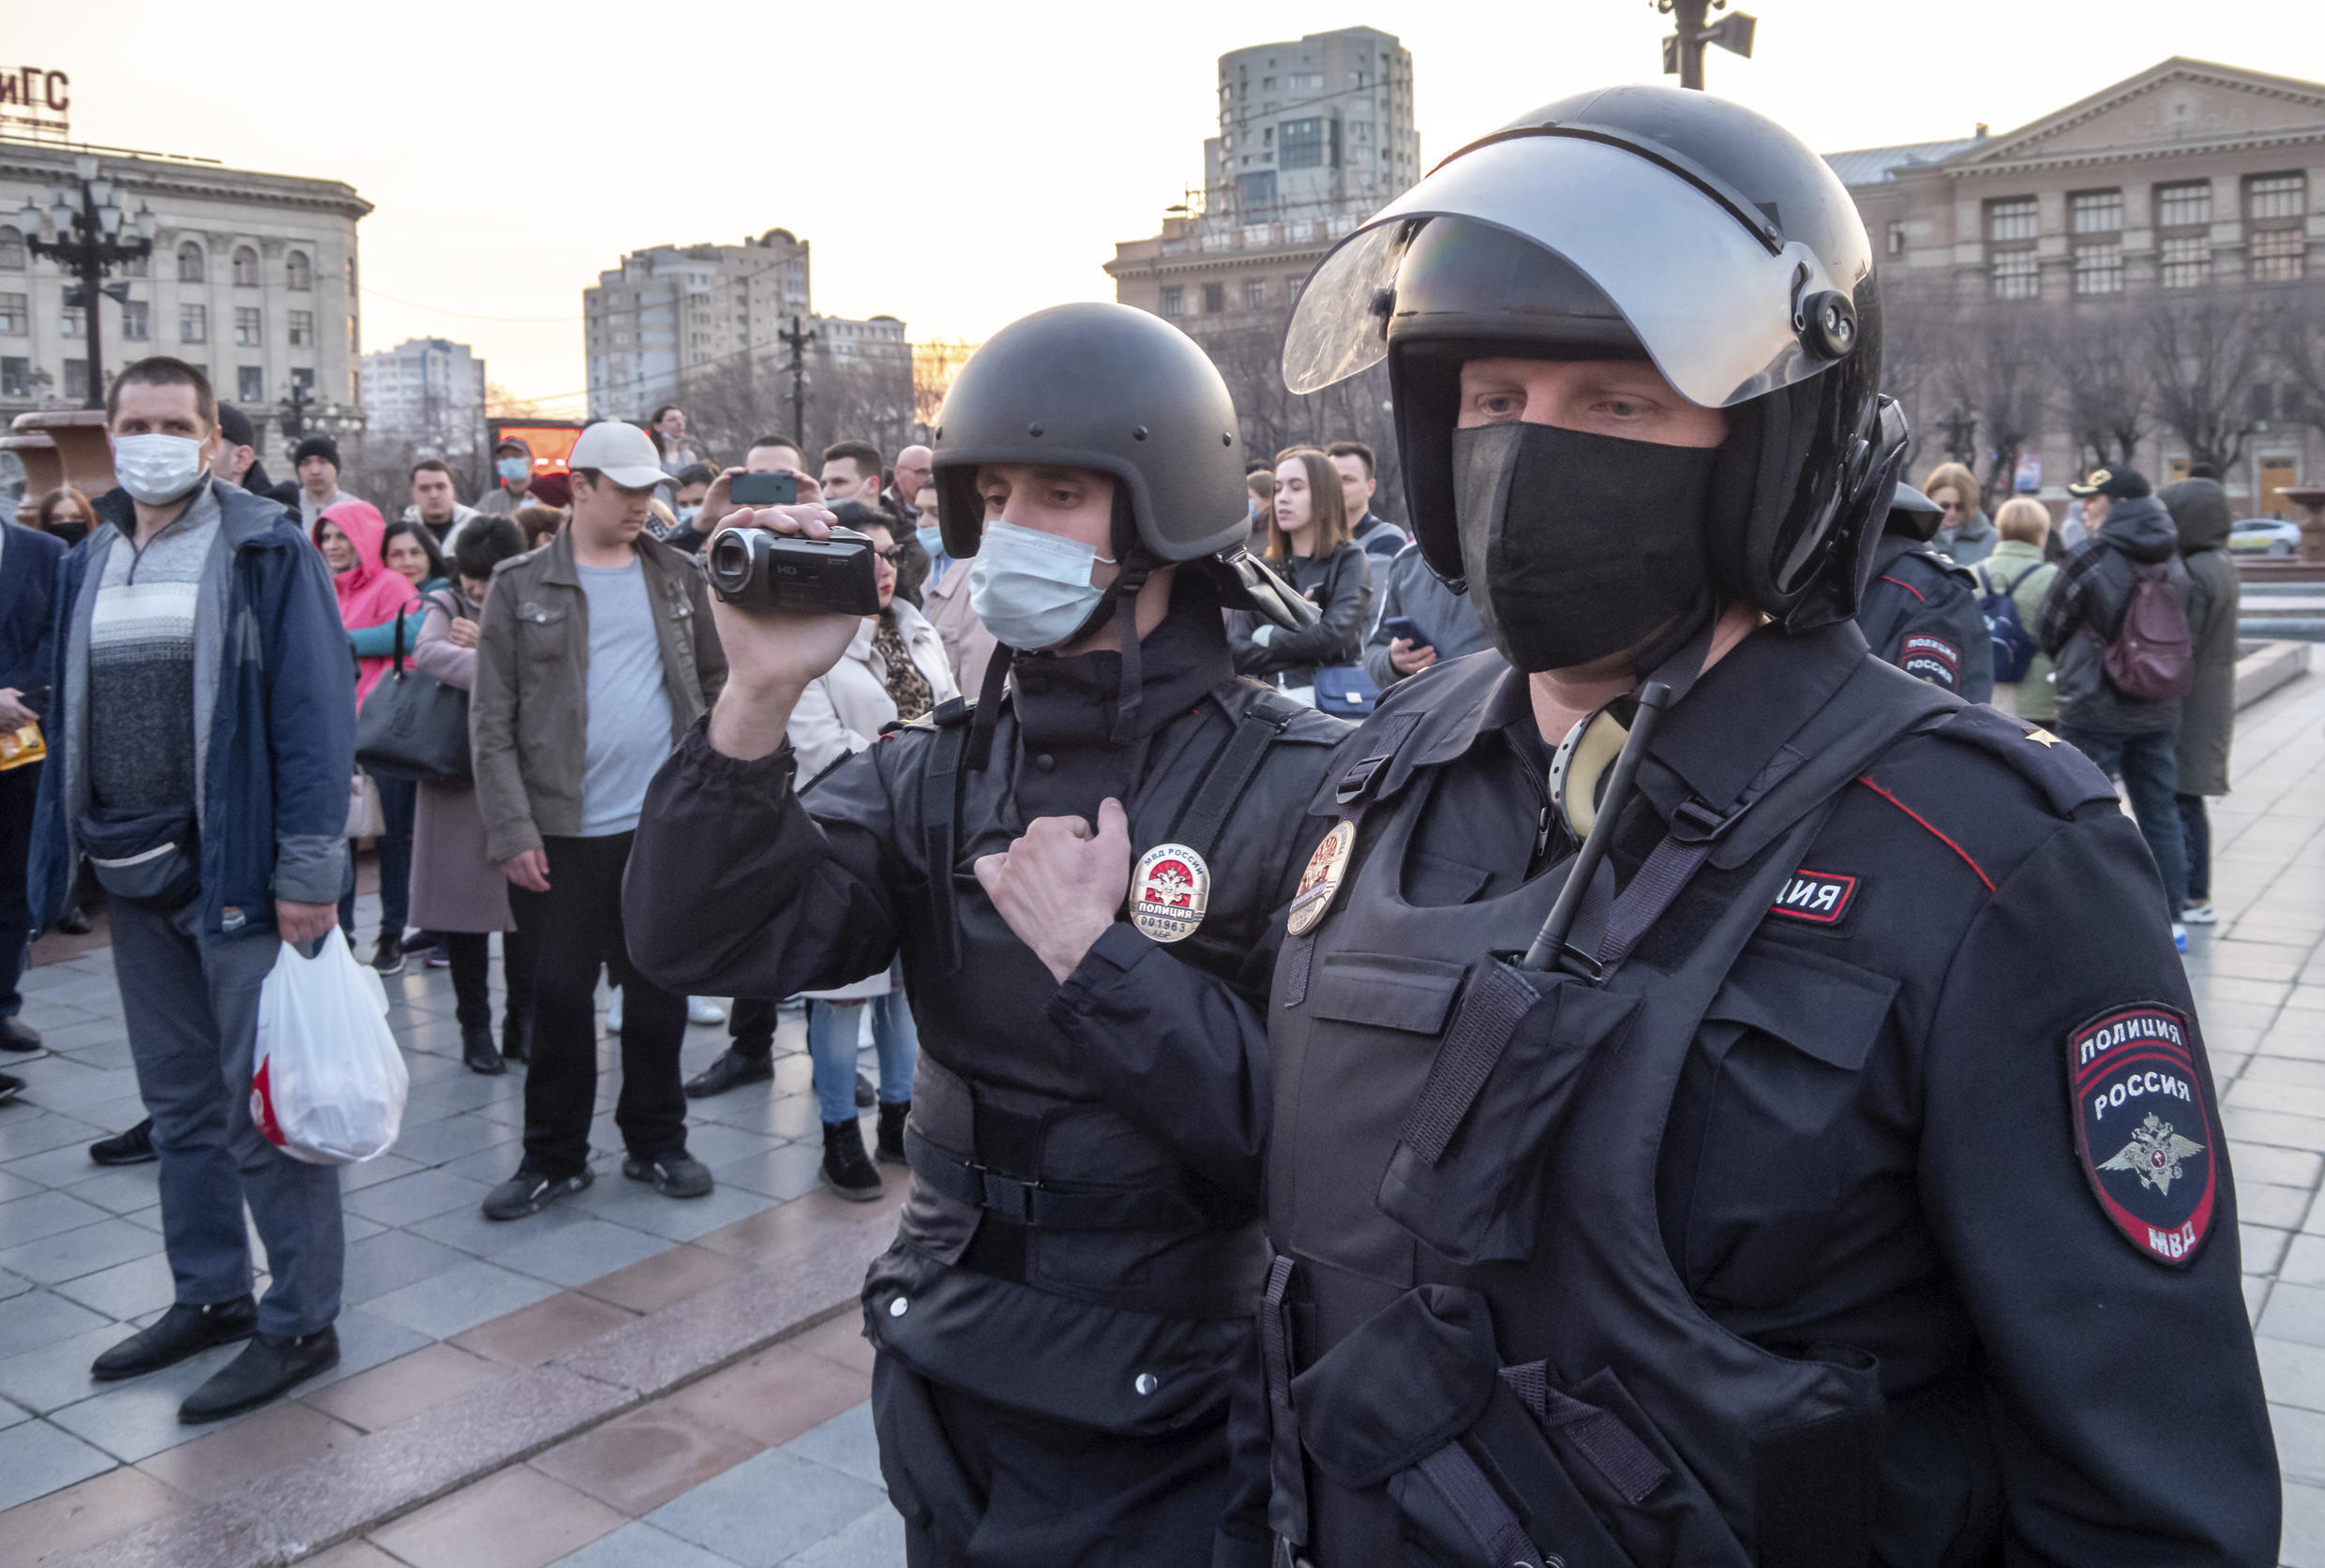 A Russian police officer films people ahead of the possible opposition rally in support of jailed opposition leader Alexei Navalny in Khabarovsk, 6,100 kilometers (3,800 miles) east of Moscow, Russia, Wednesday, April 21, 2021. Navalny's team has called for nationwide protests on Wednesday following reports that the politician's health was deteriorating in prison, where he has been on hunger strike since March 31. Russian authorities have stressed that the demonstrations were not authorized and warned against participating in them. (AP Photo/Igor Volkov)